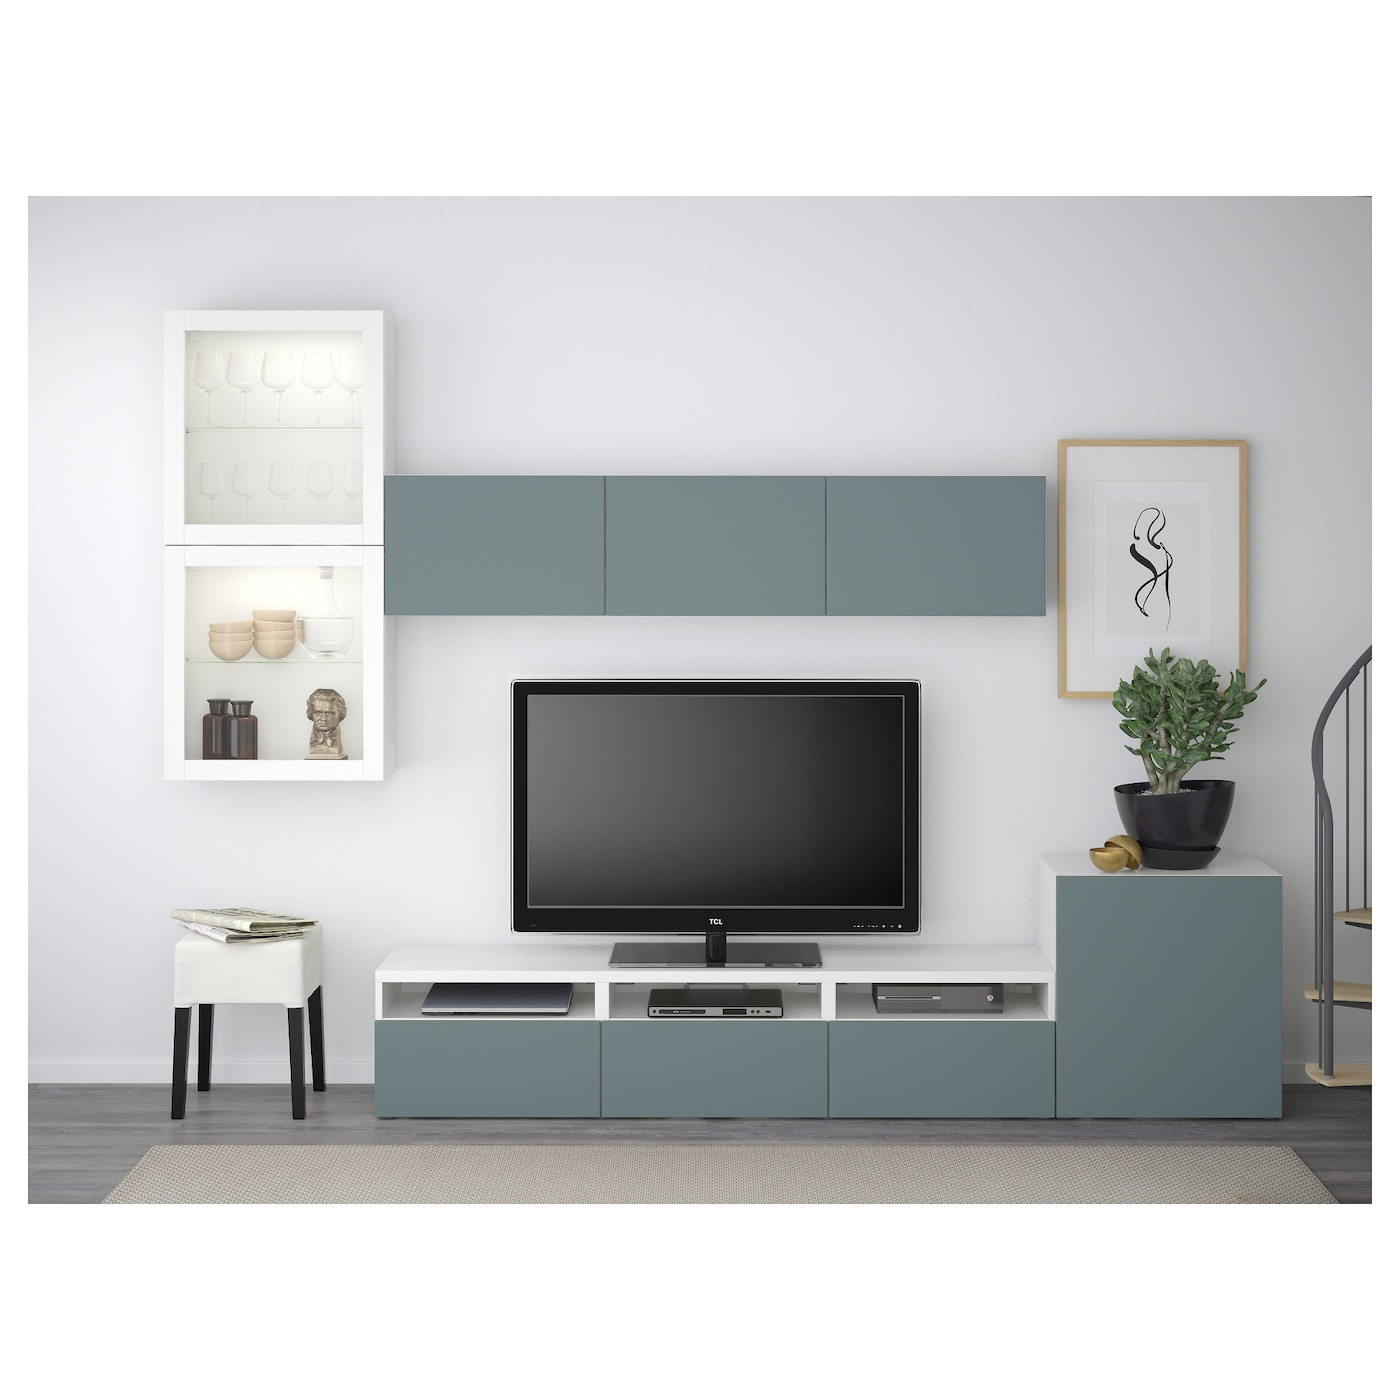 Best tv storage combination glass doors white valviken grey turquoise clear - Meuble tv en verre ikea ...